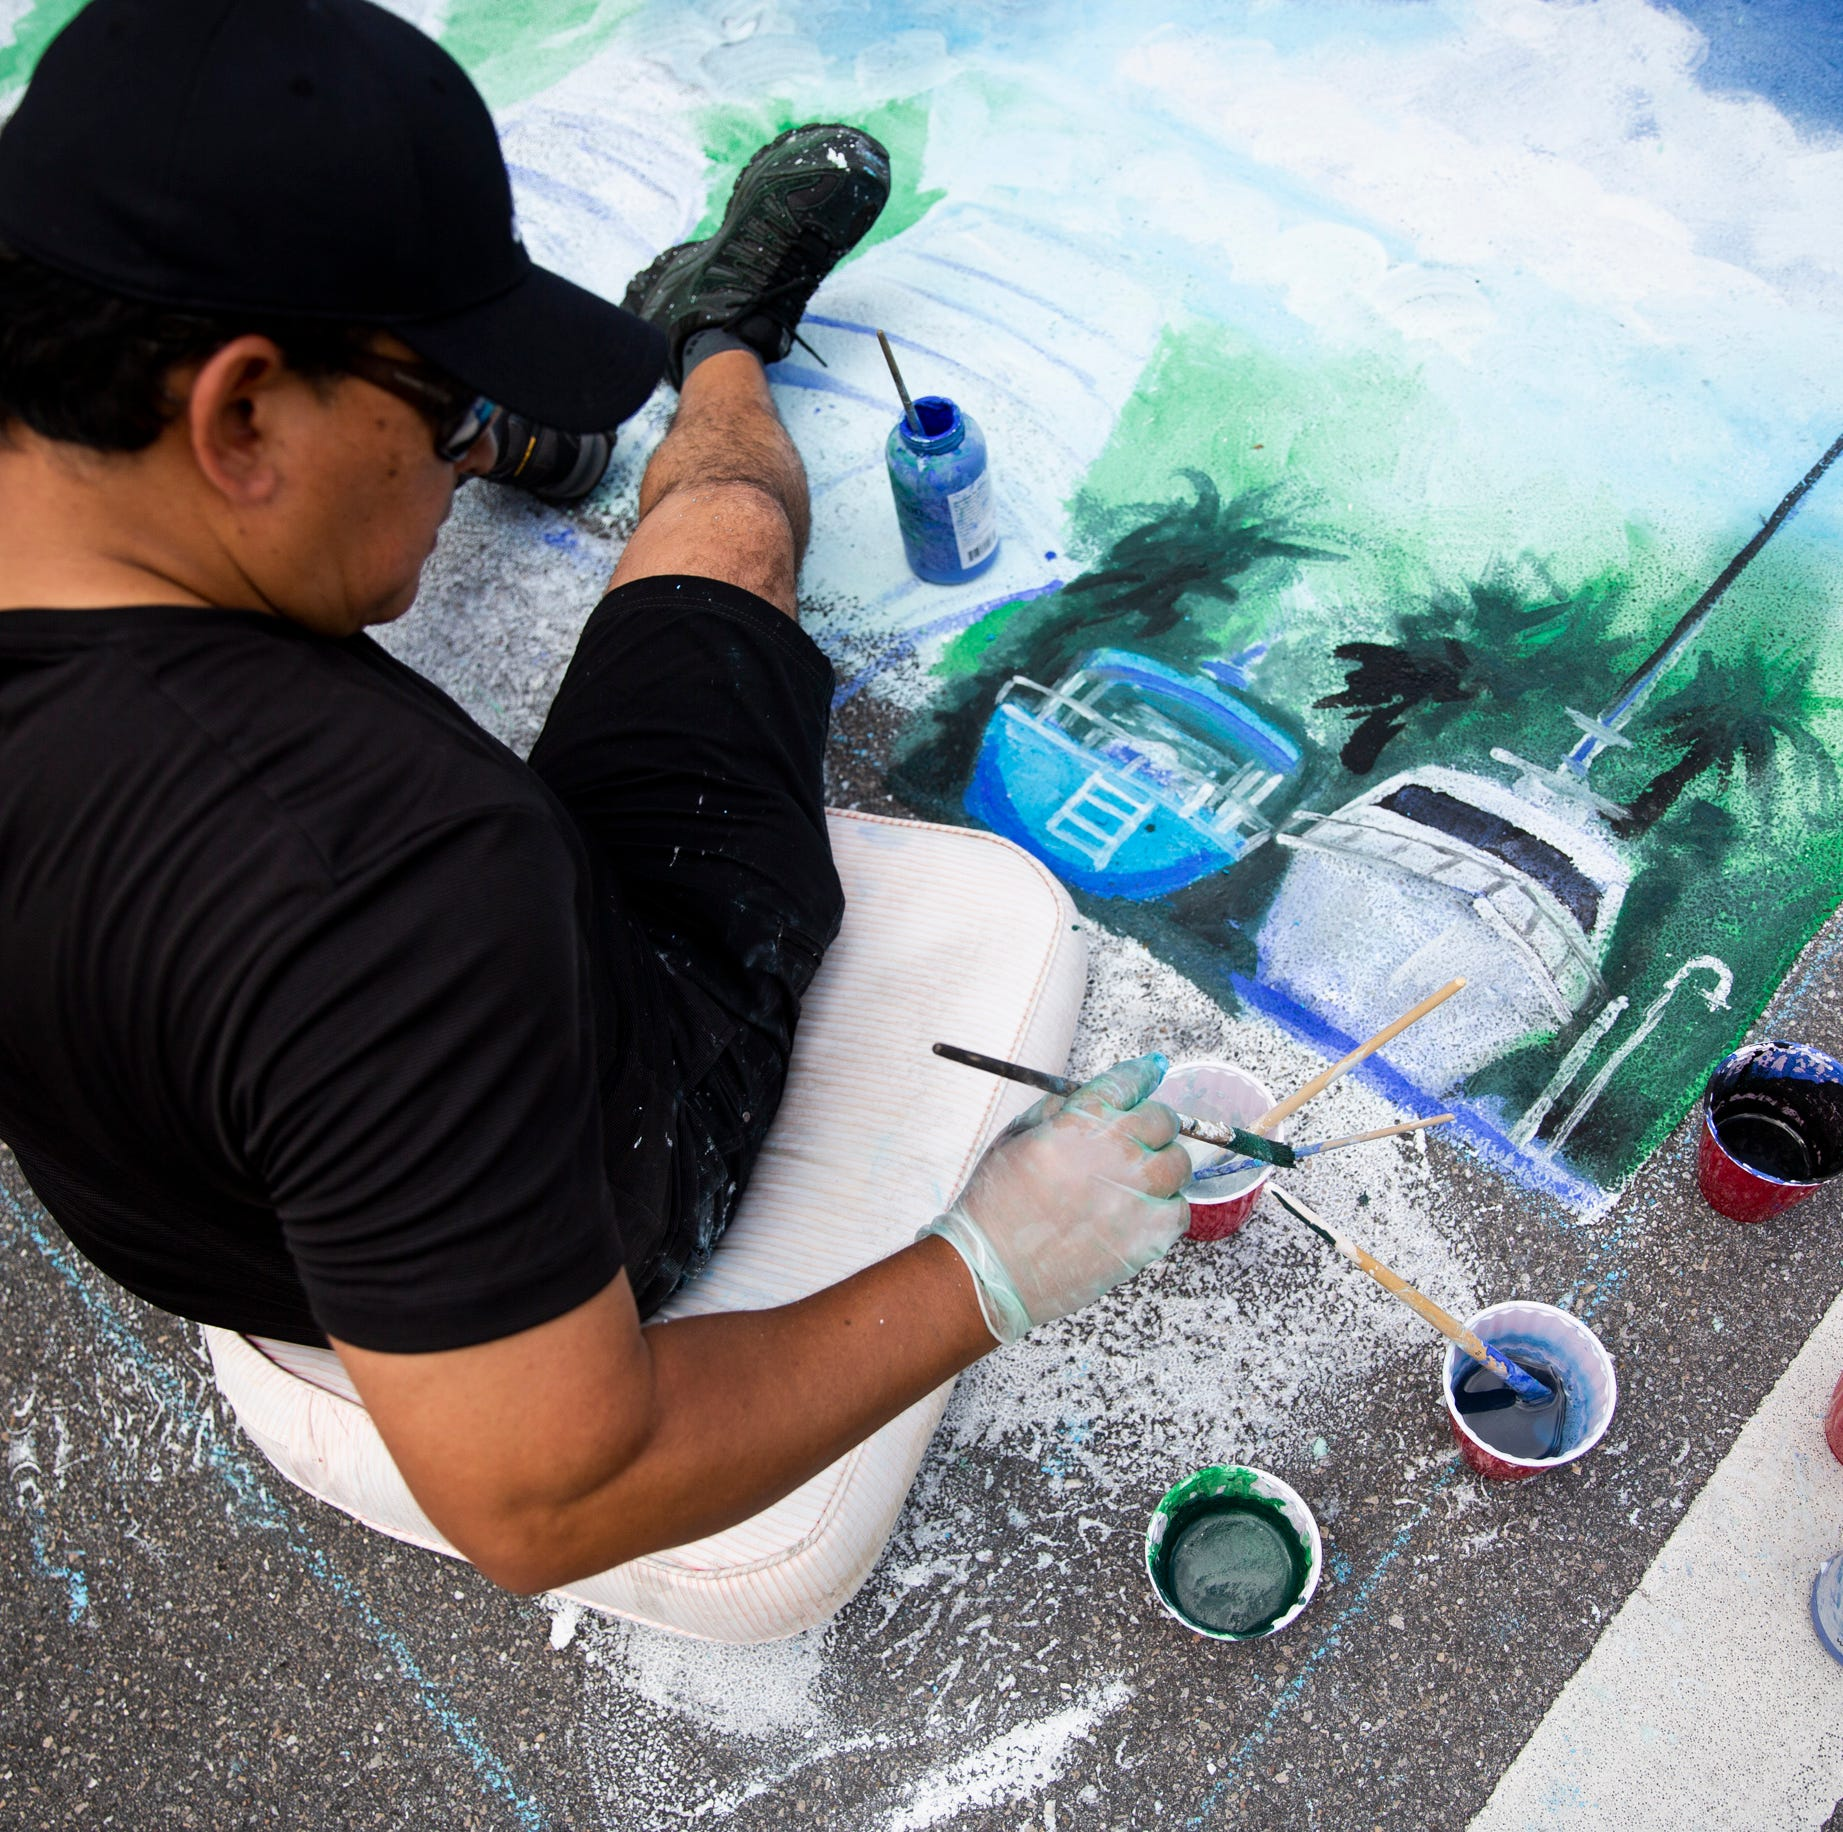 Naples Chalk Art on 5th brings color and reminder: 'It's all about being in the moment'